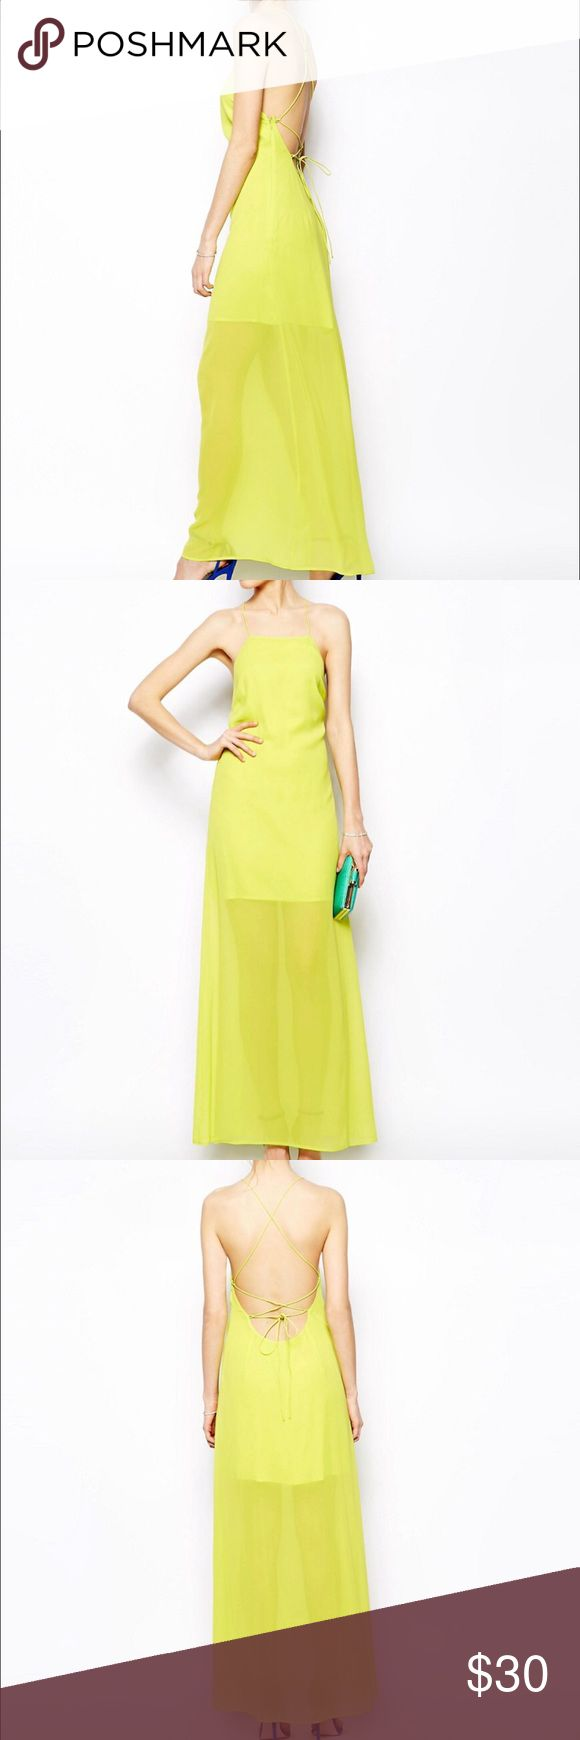 """Strappy neon maxi dress perfect for summer In excellent condition / worn once / maxi dress with underlining / side zipper / adjustable straps/ low cut / true to size / I wear size 10-12 ( seen in 4th pic)  laying flat bust 19"""" waist 22"""" length 60"""" Dresses Maxi"""